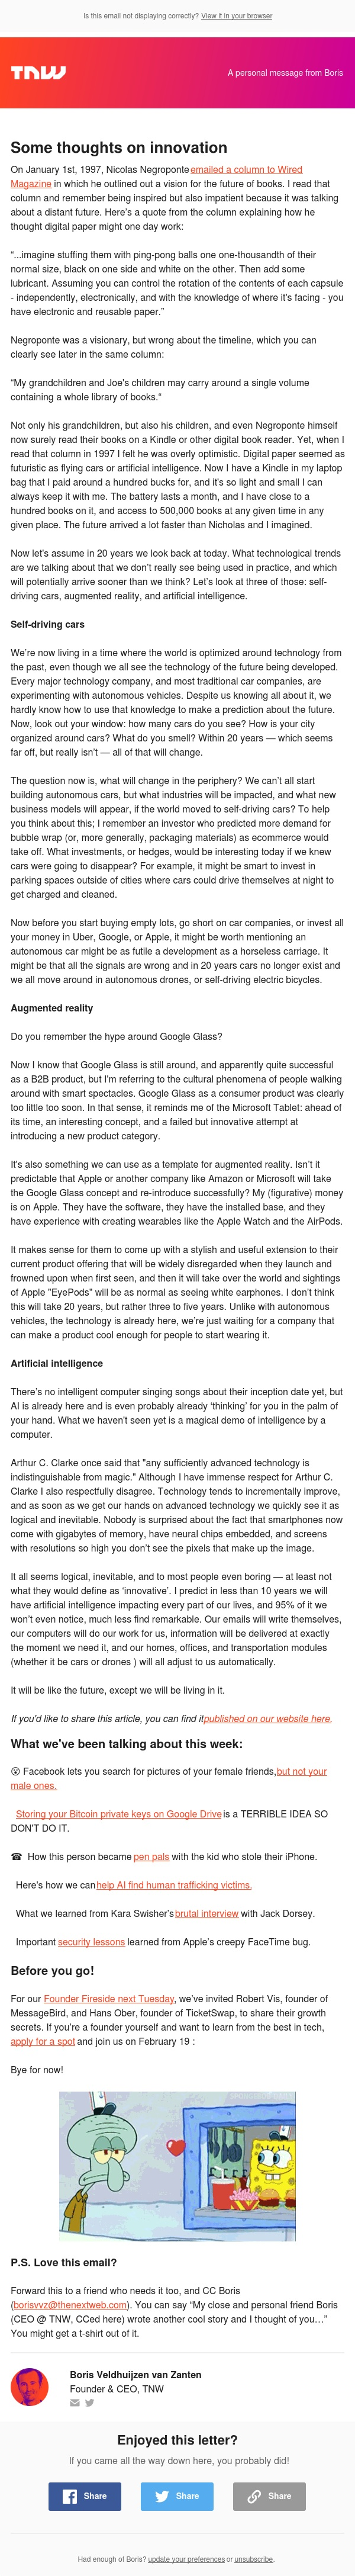 Some thoughts on innovation